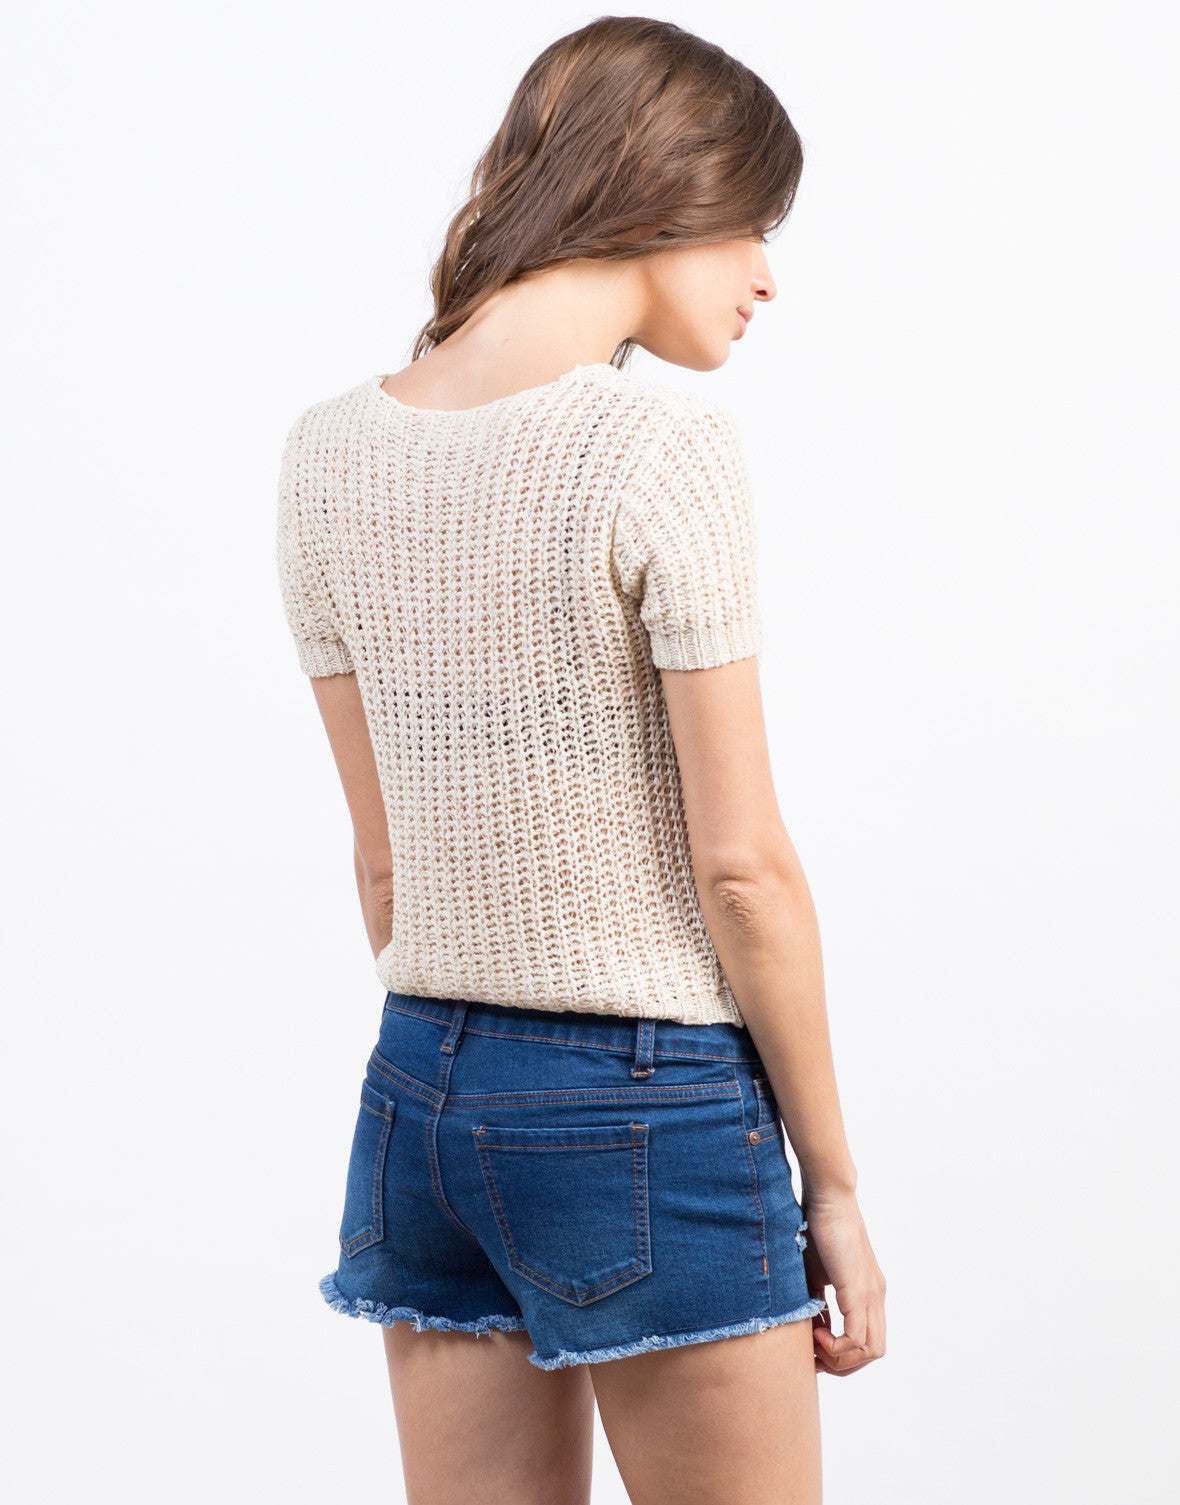 Back View of Knitty Gritty Tee